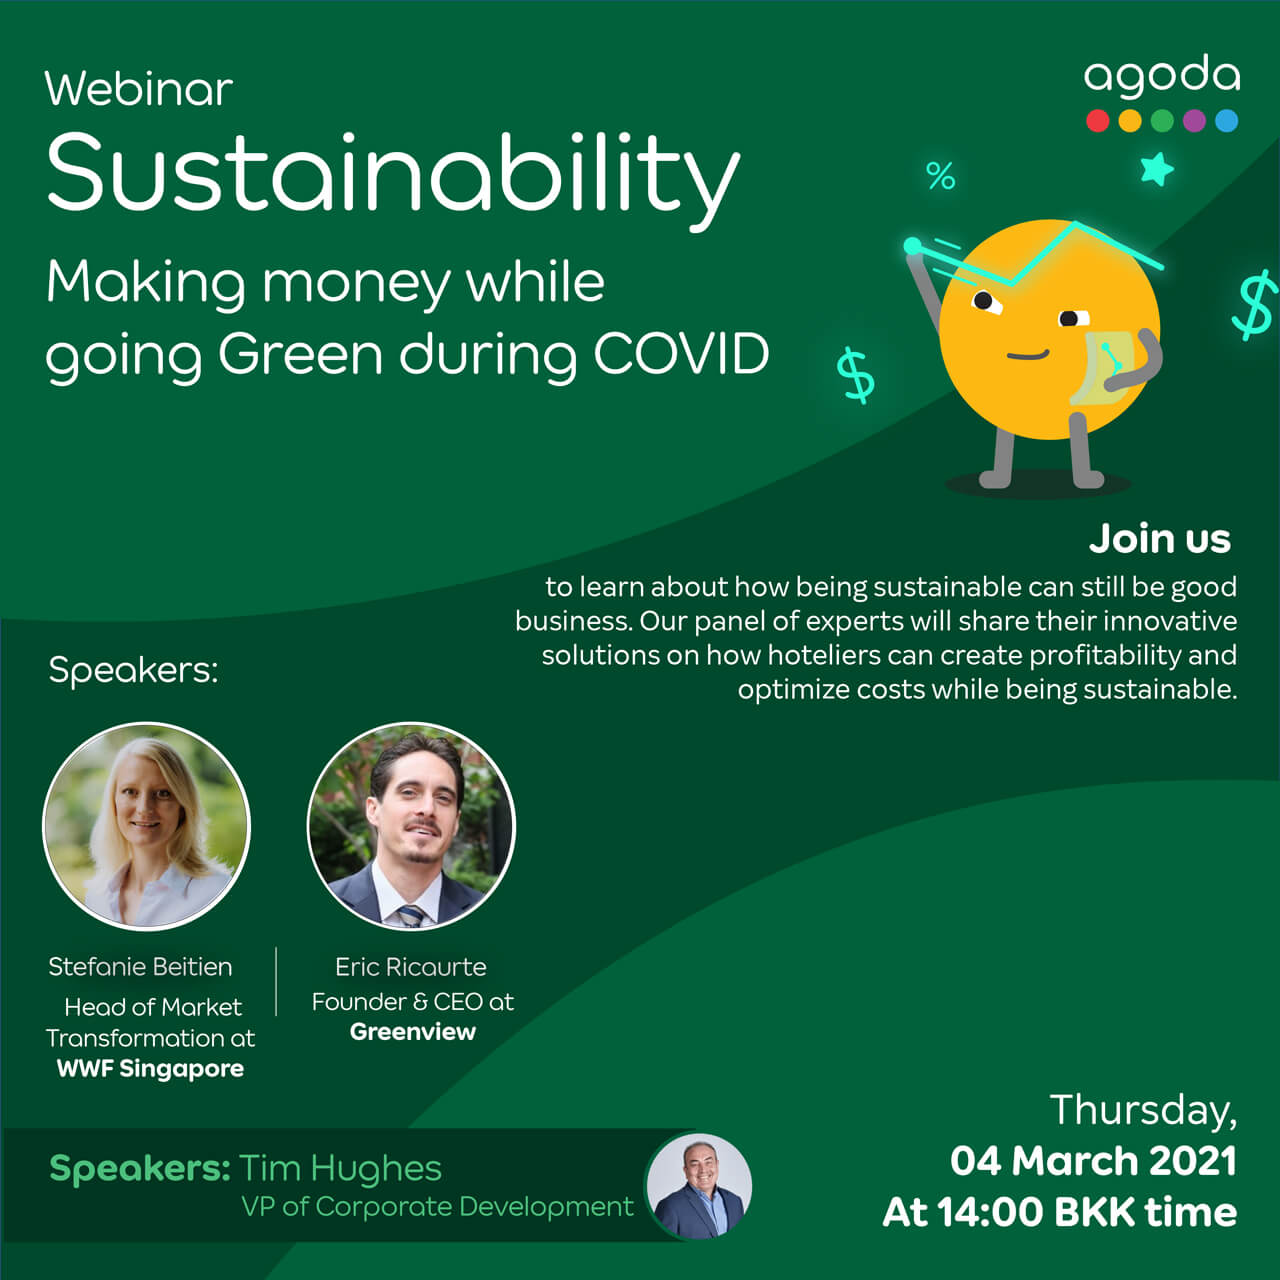 March 4th, Making money while going Green during COVID